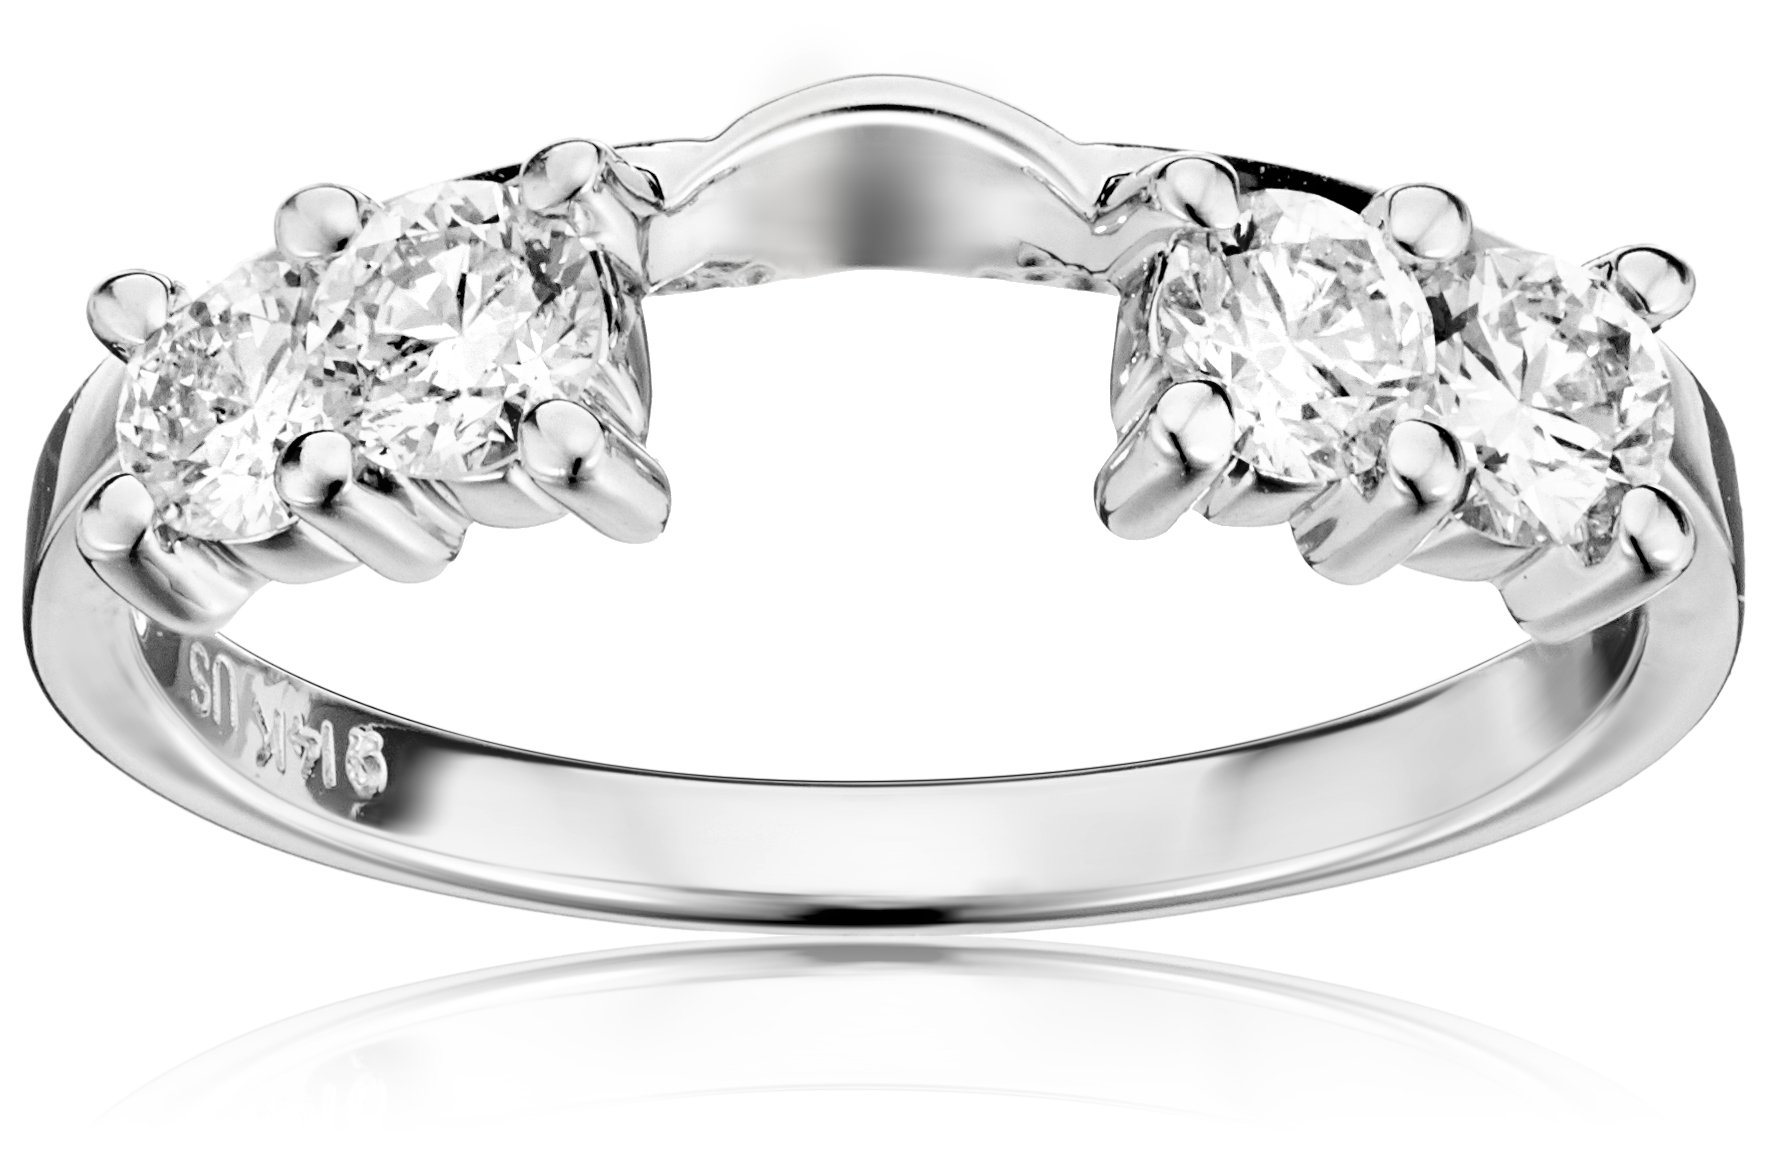 14k White Gold Round Diamond Solitaire Engagement Ring Enhancer (5/8 carat, H-I Color, I1-I2 Clarity), Size 8